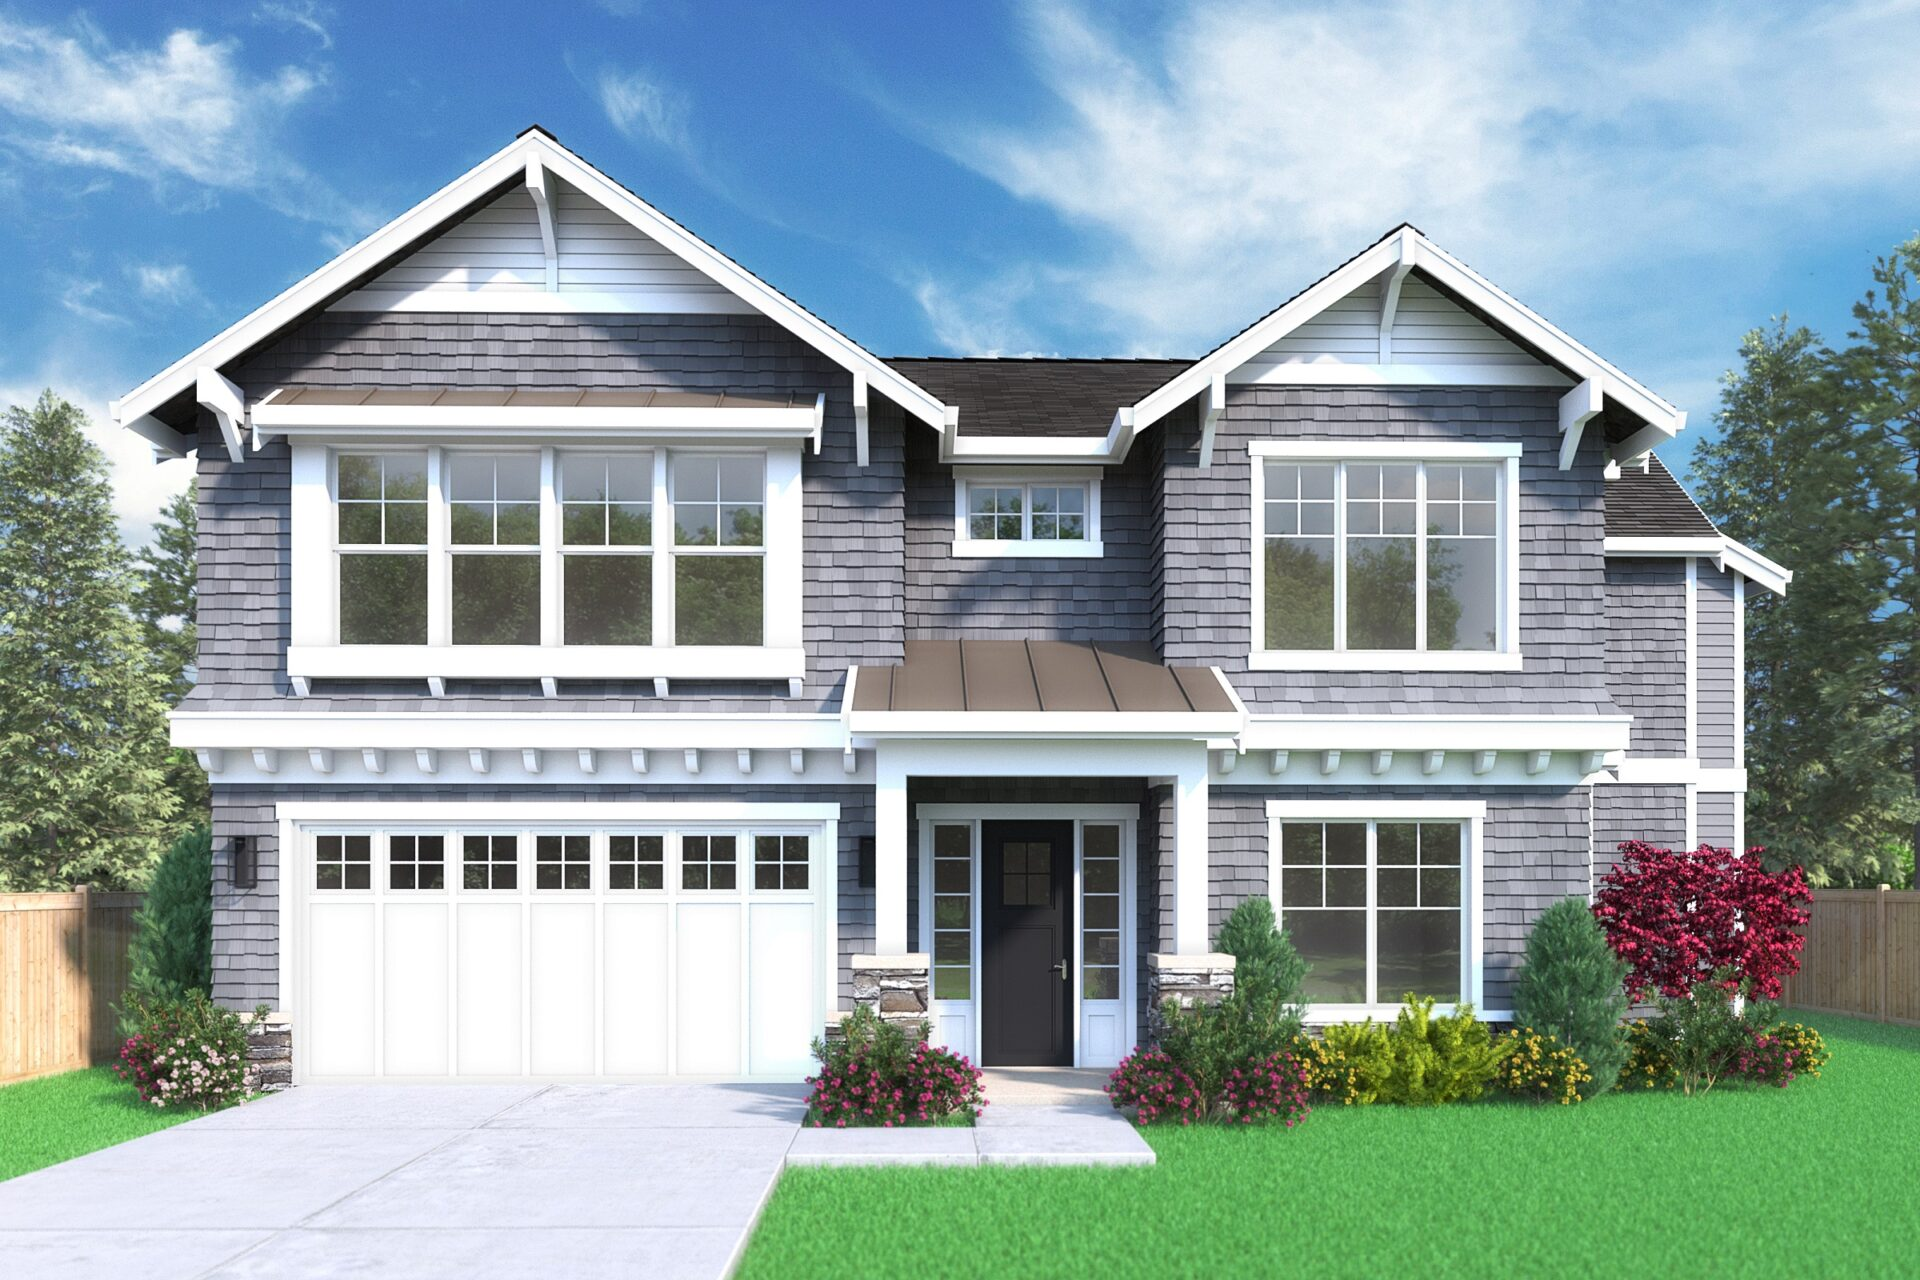 View our new luxury home construction on 1703 172nd Ct NE, in Bellevue, WA from MN Custom Homes